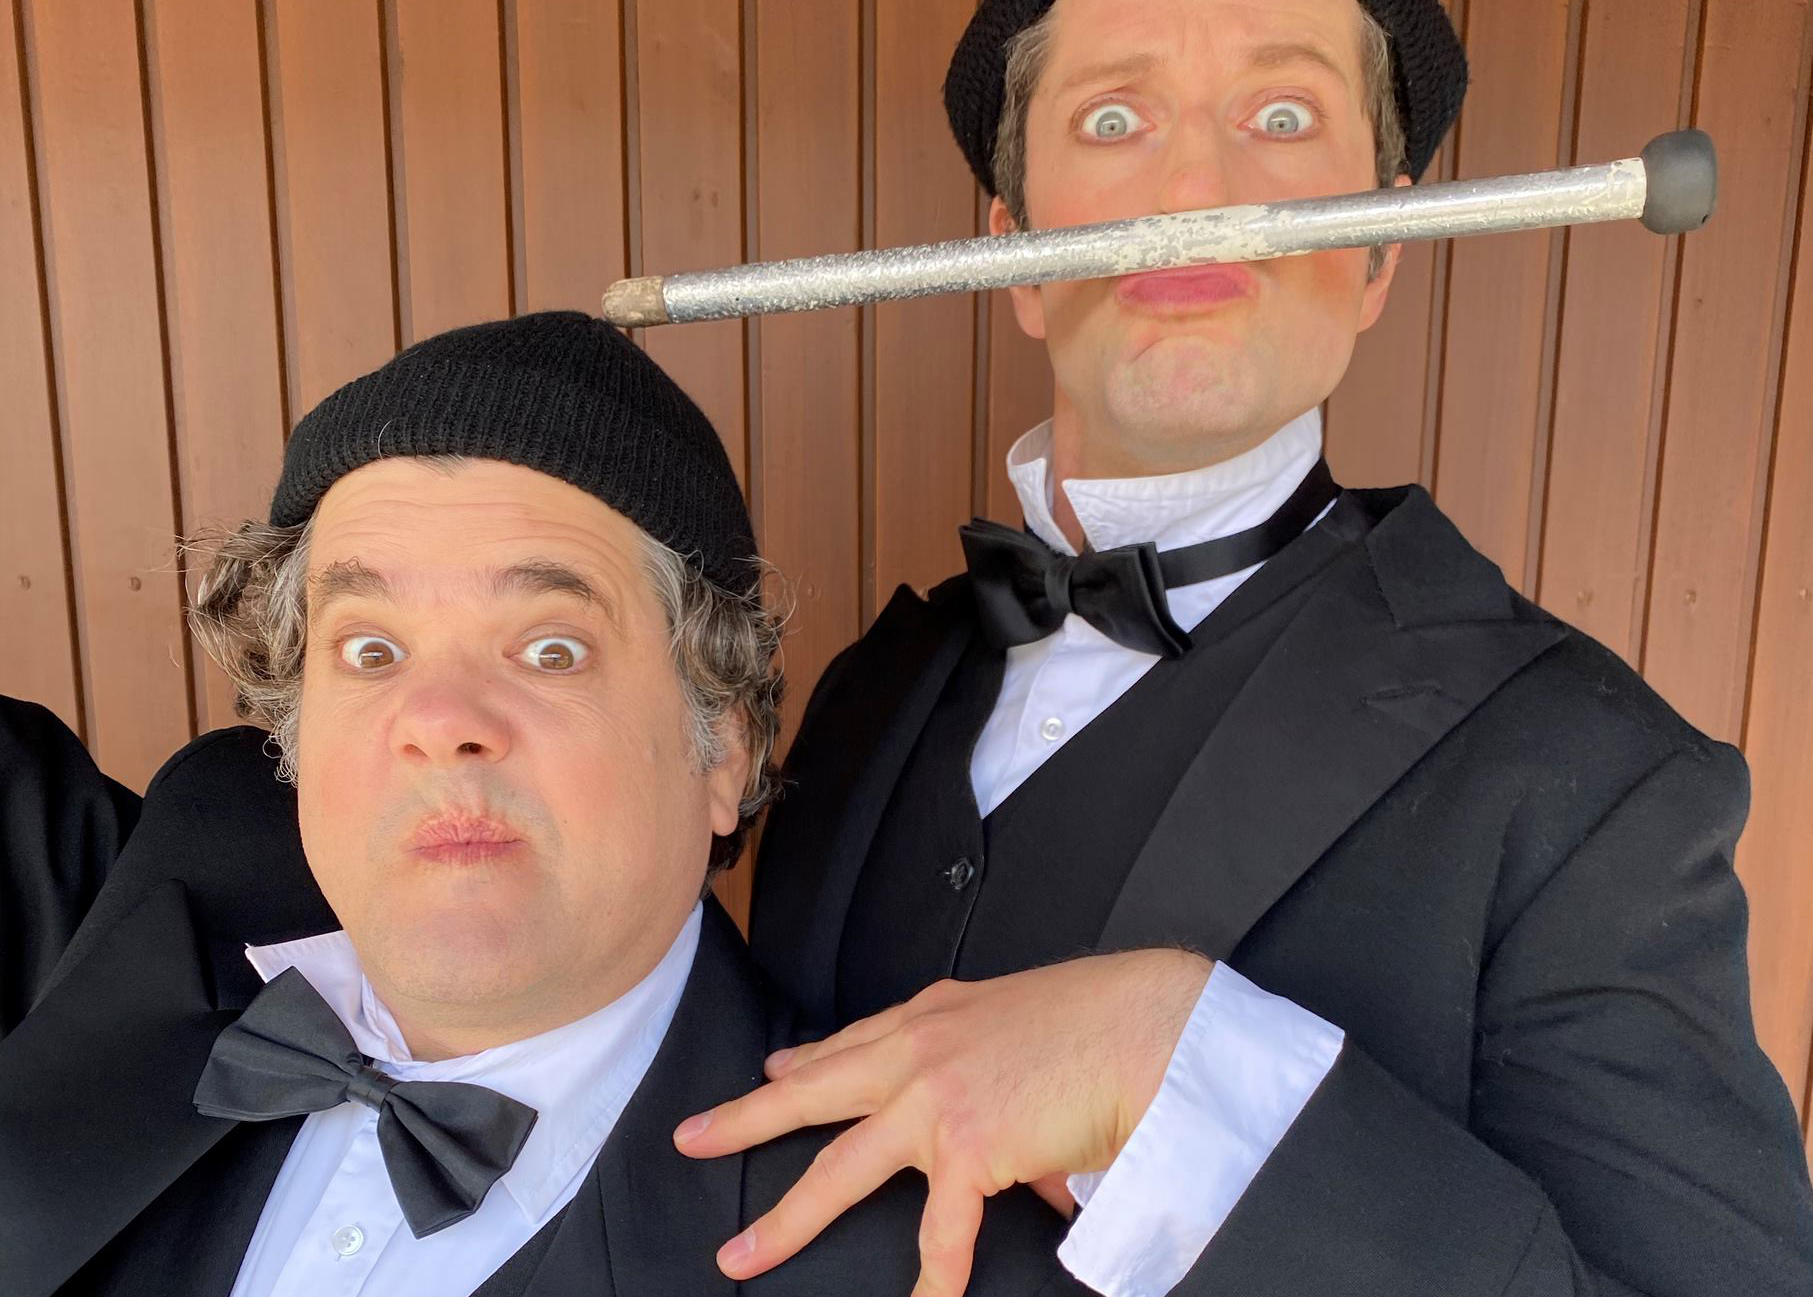 You are currently viewing FORZARELLO – Jonglage – Comedy – Feuershow